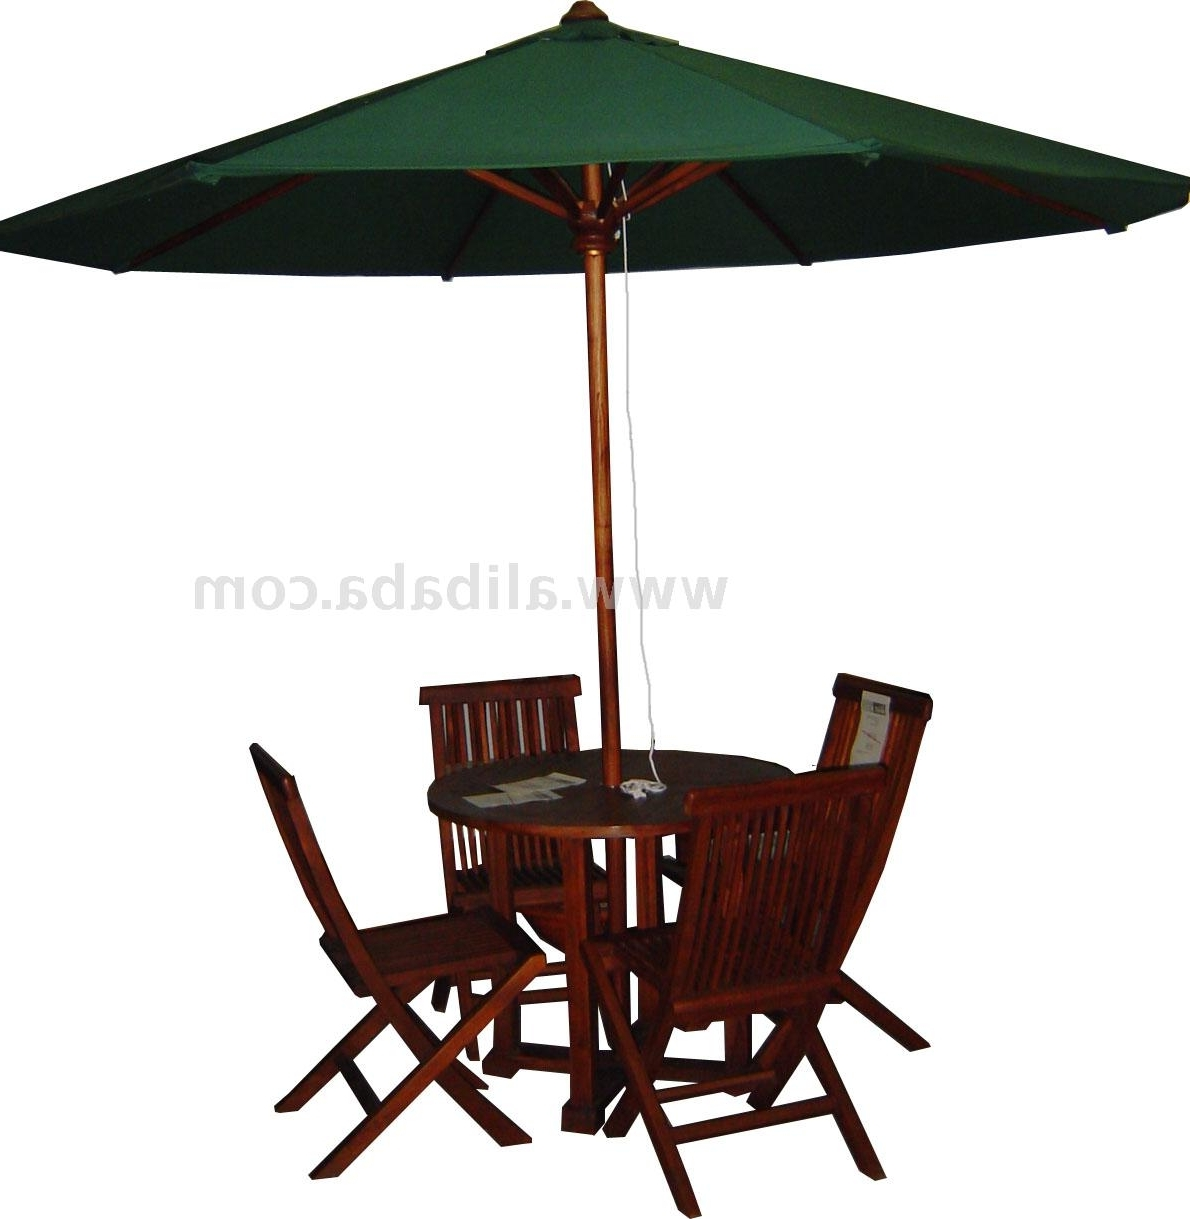 Recent Patio Umbrellas For Tables With Regard To Outdoor Teak Umbrella,folding Chair,table – Buy Outdoor Umbrella (View 17 of 20)